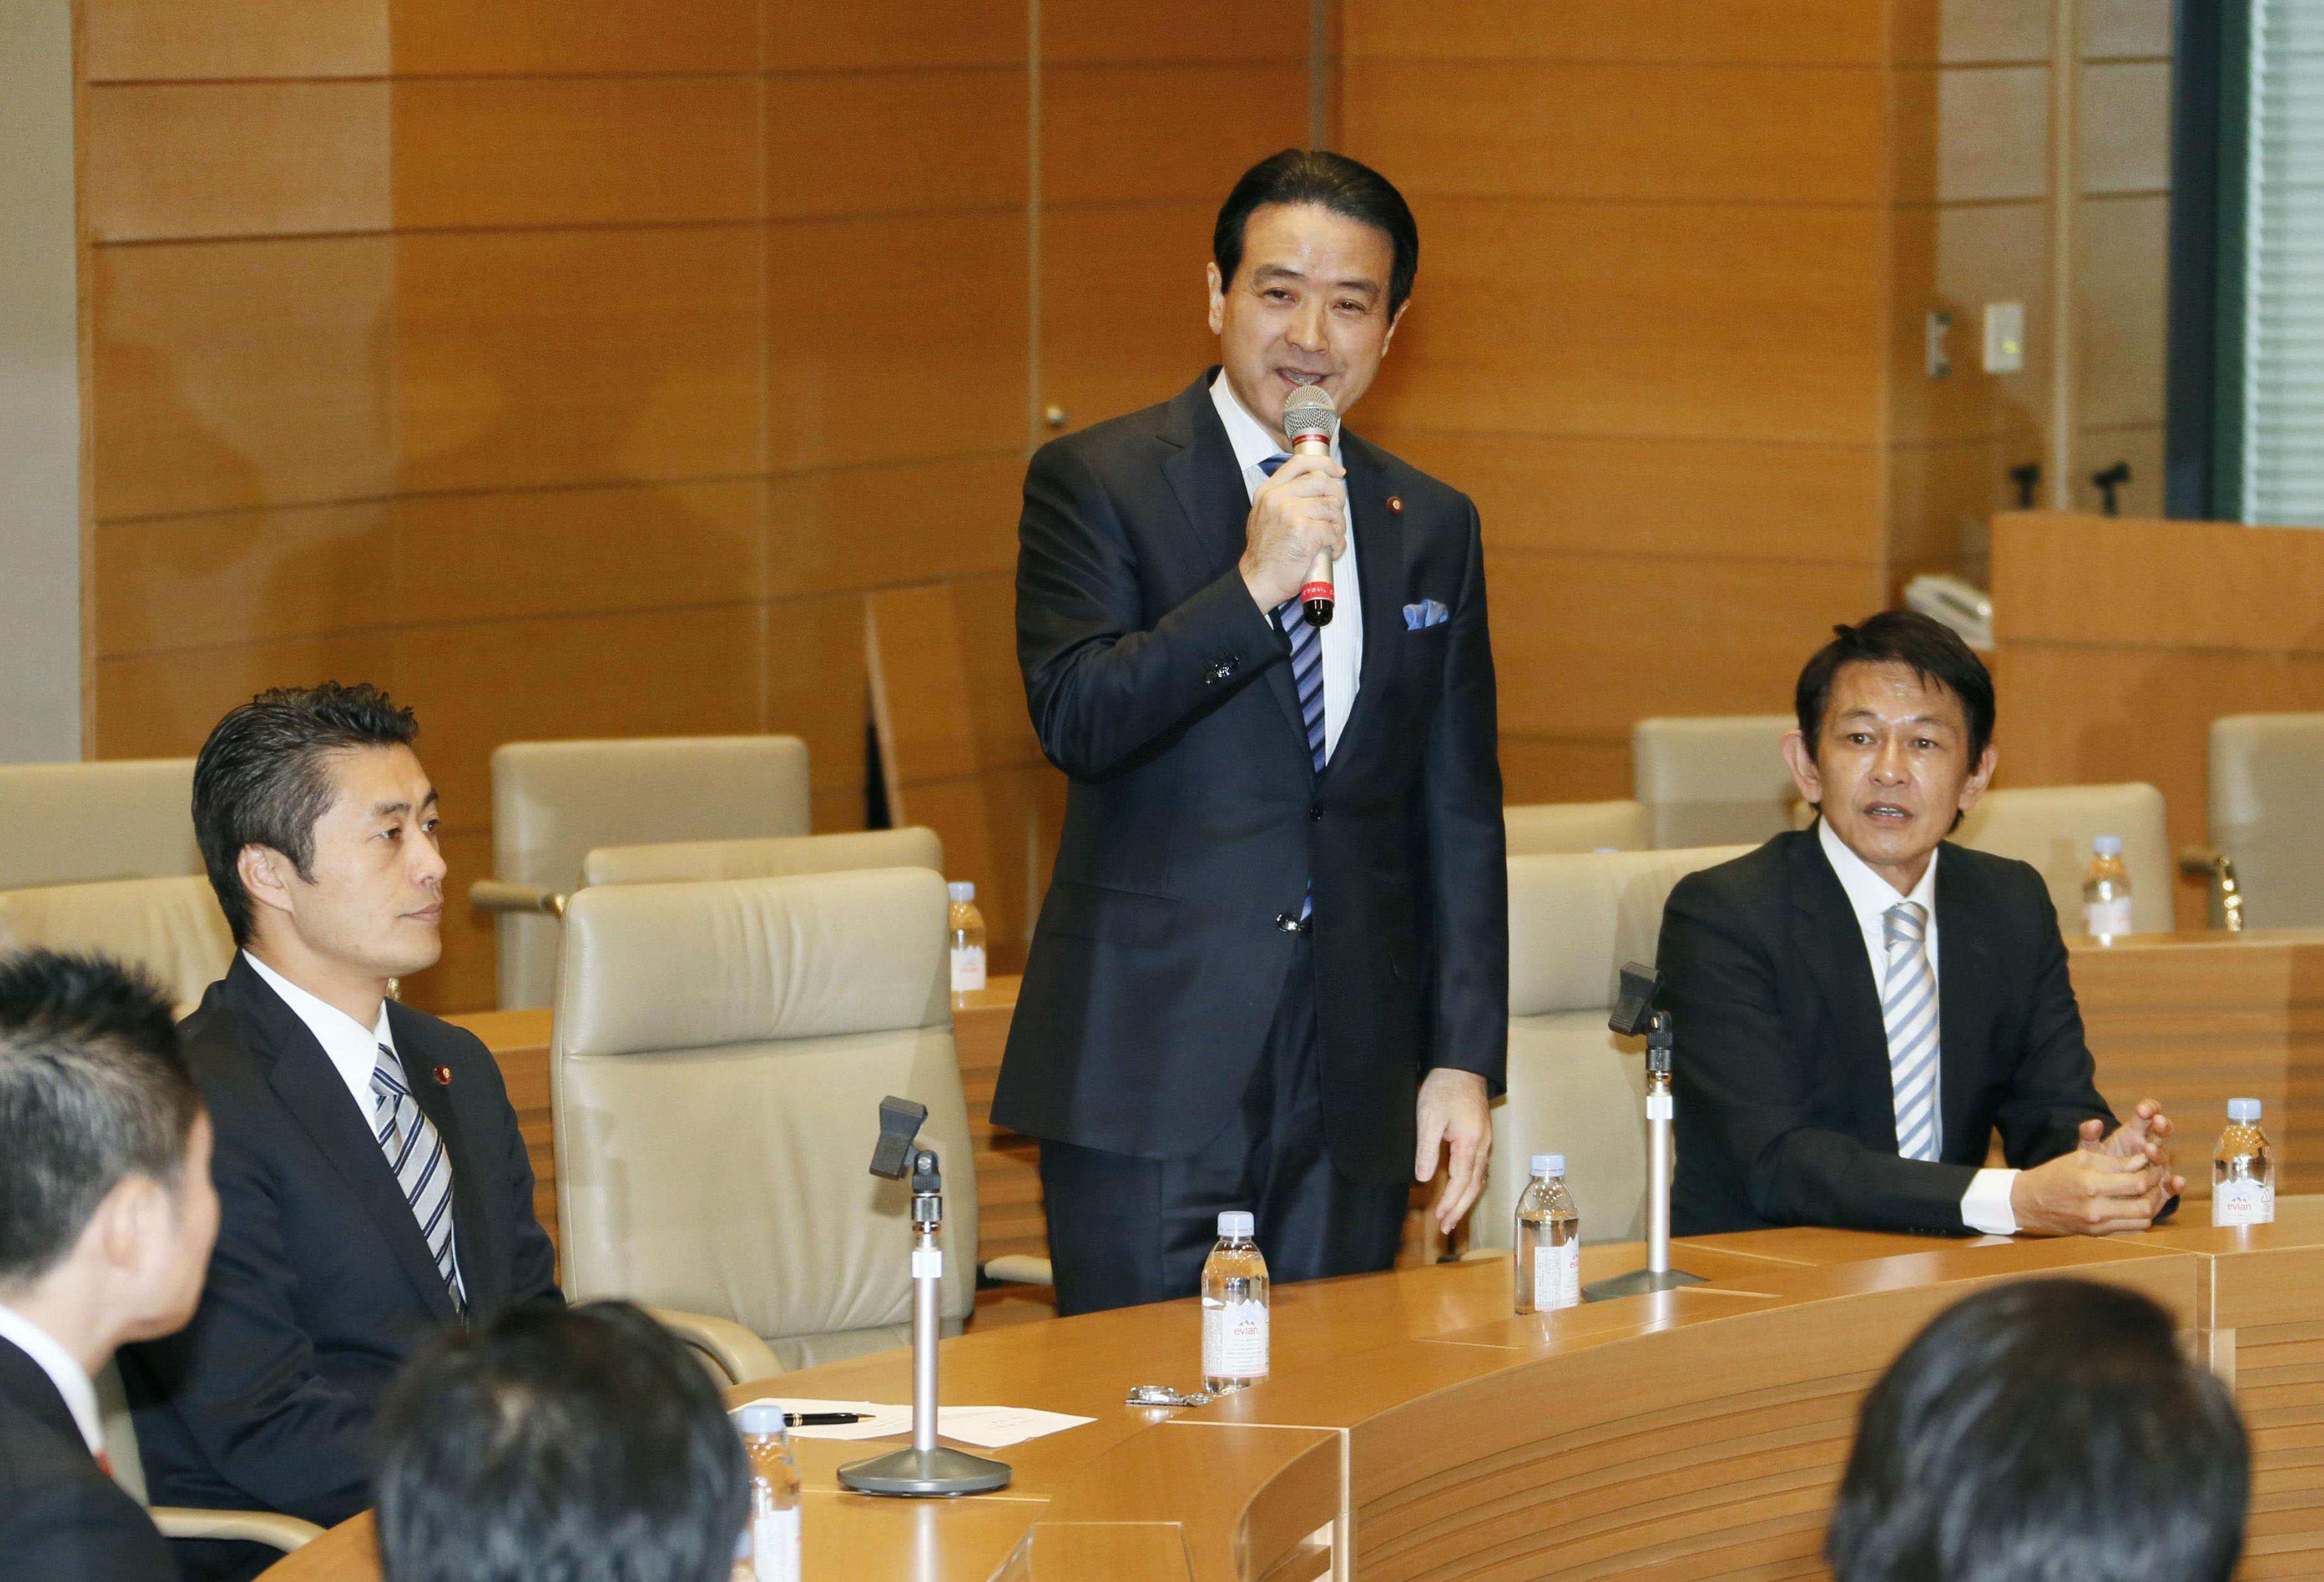 Man of the hour: Former Your Party Secretary-General Kenji Eda speaks at the launch of a policy study group as Goshi Hosono of the Democratic Party of Japan (left) and Yorihisa Matsuno of Nippon Ishin no Kai (Japan Restoration Party) look on. | KYODO